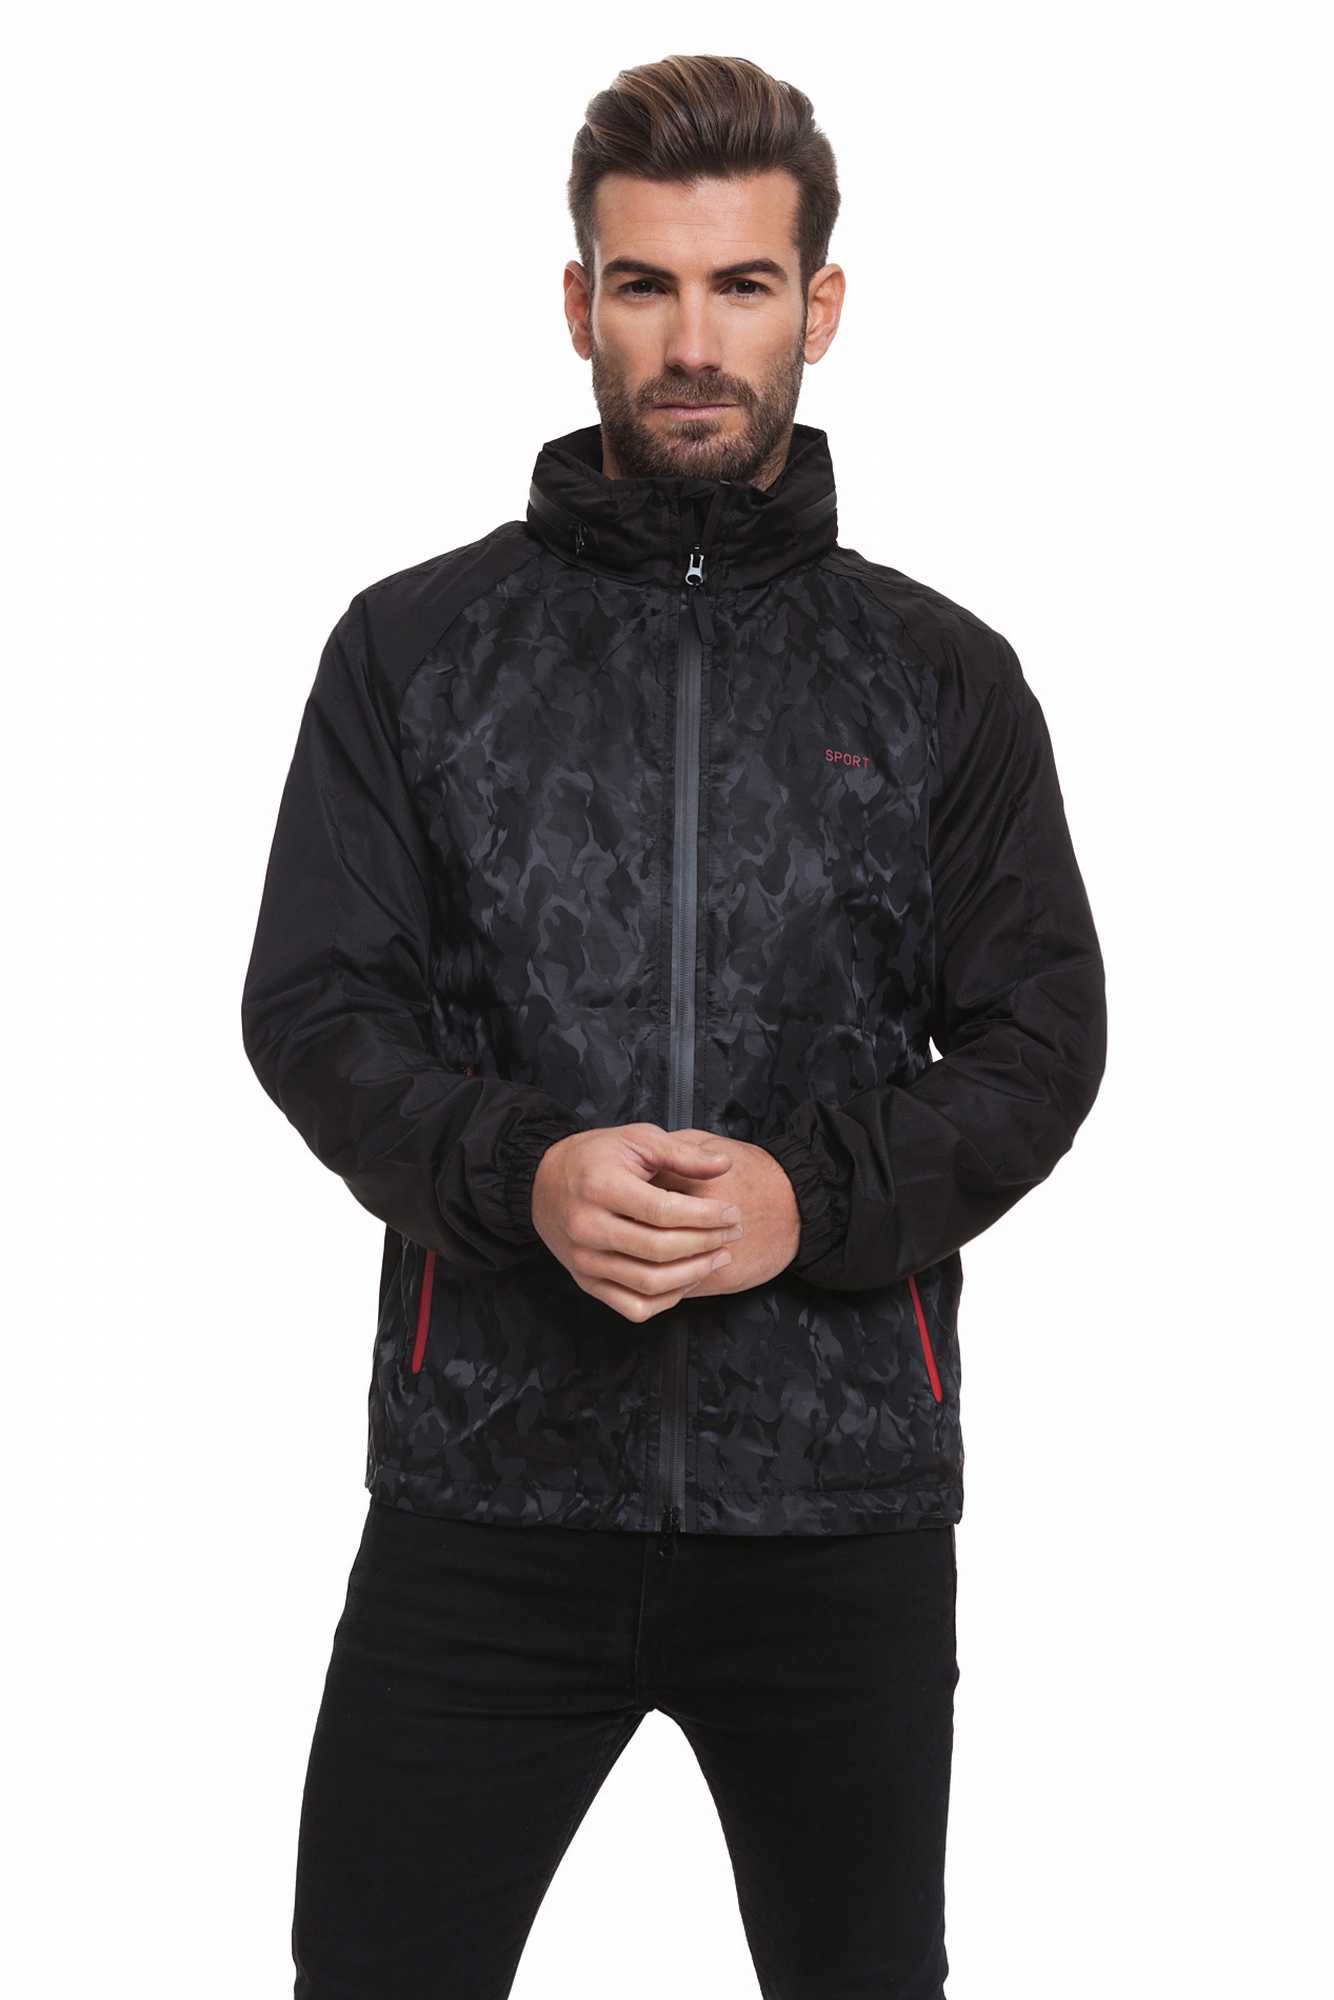 Born Rich Jacket For Men FABREGAS With Hoodie And Black Color Zipper Length Causal BR2K111097AA2BRC-1